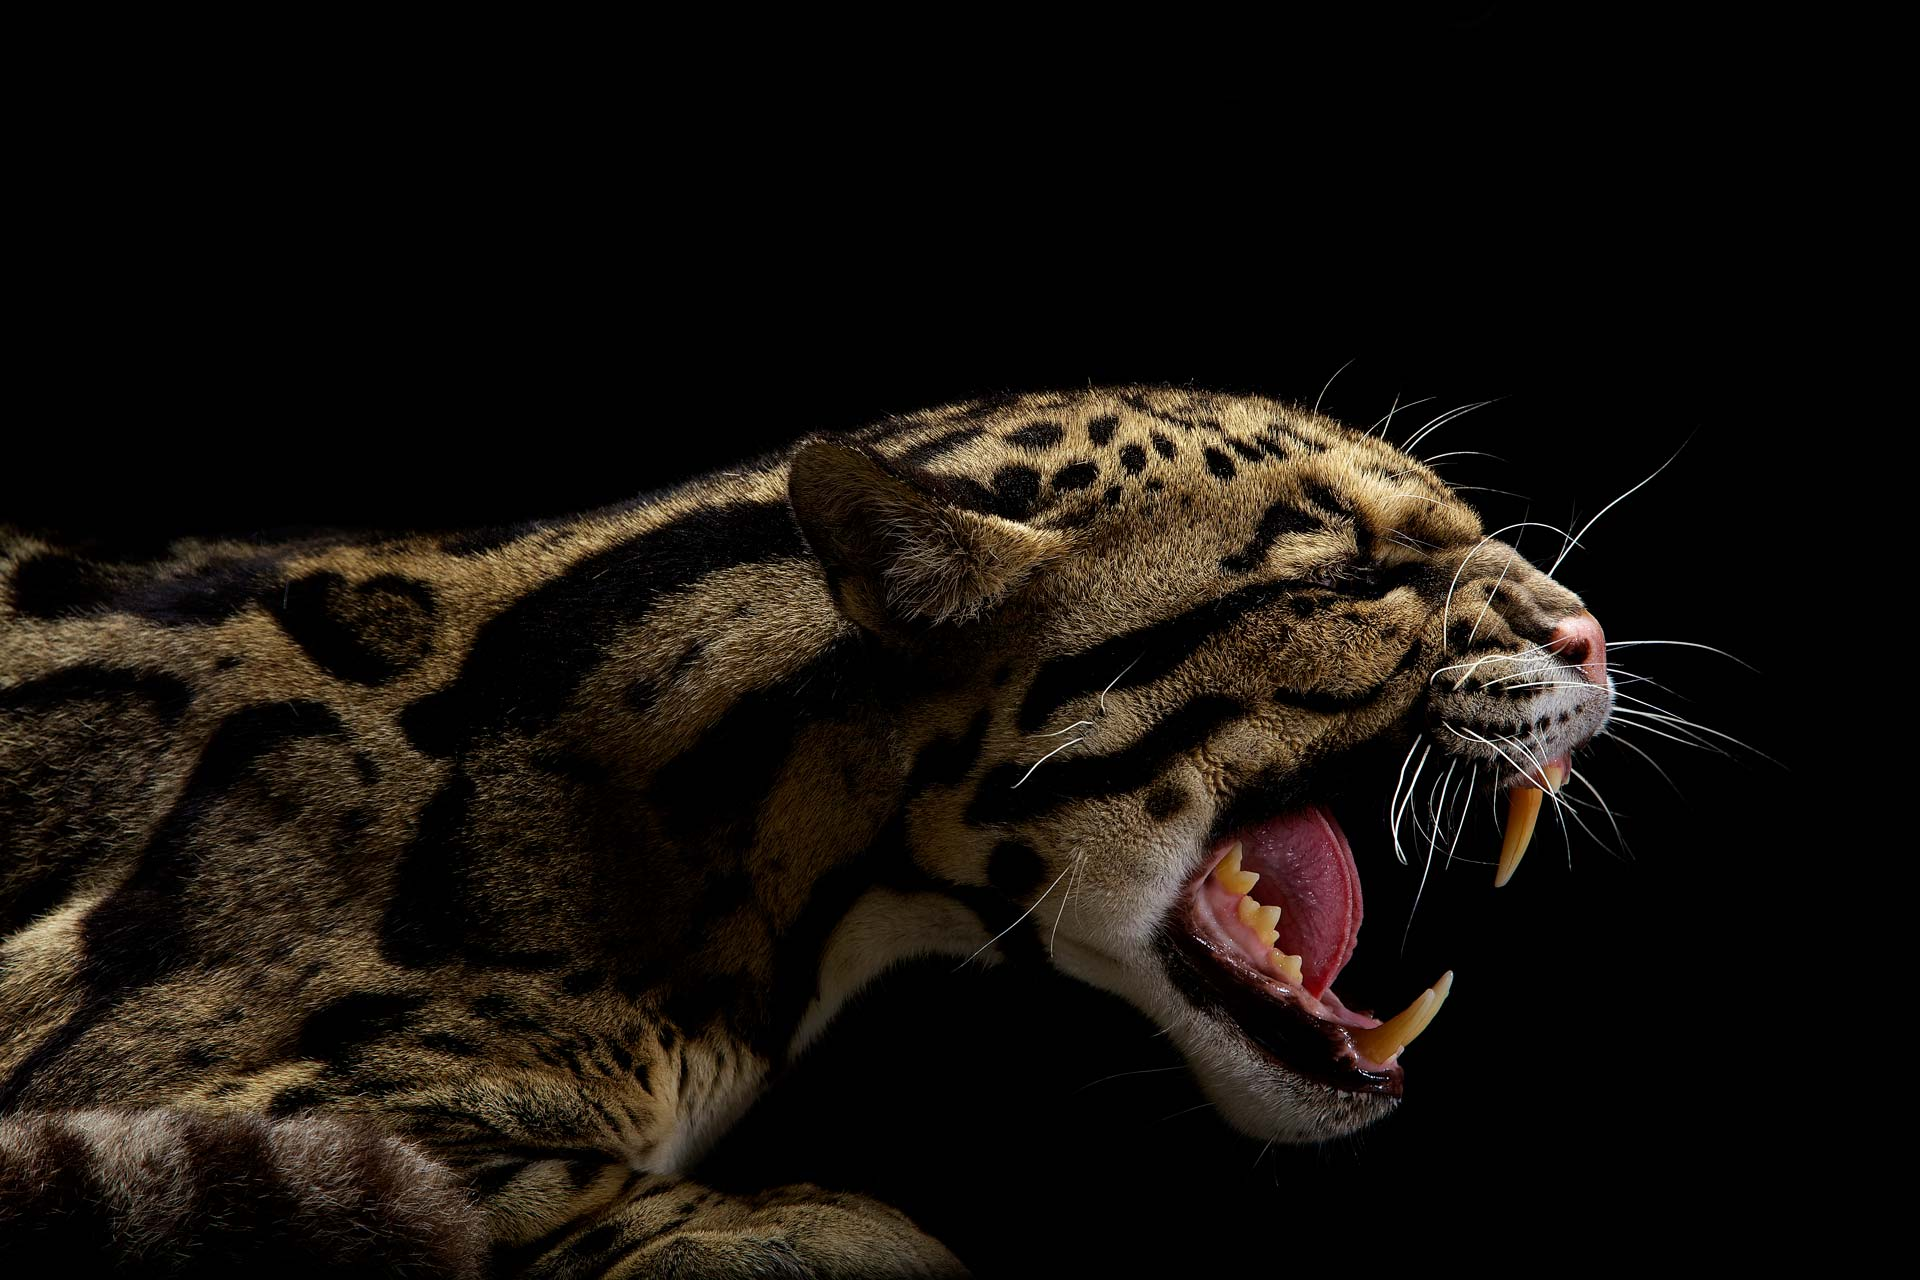 10-Musi_Angry-Leopard.jpg